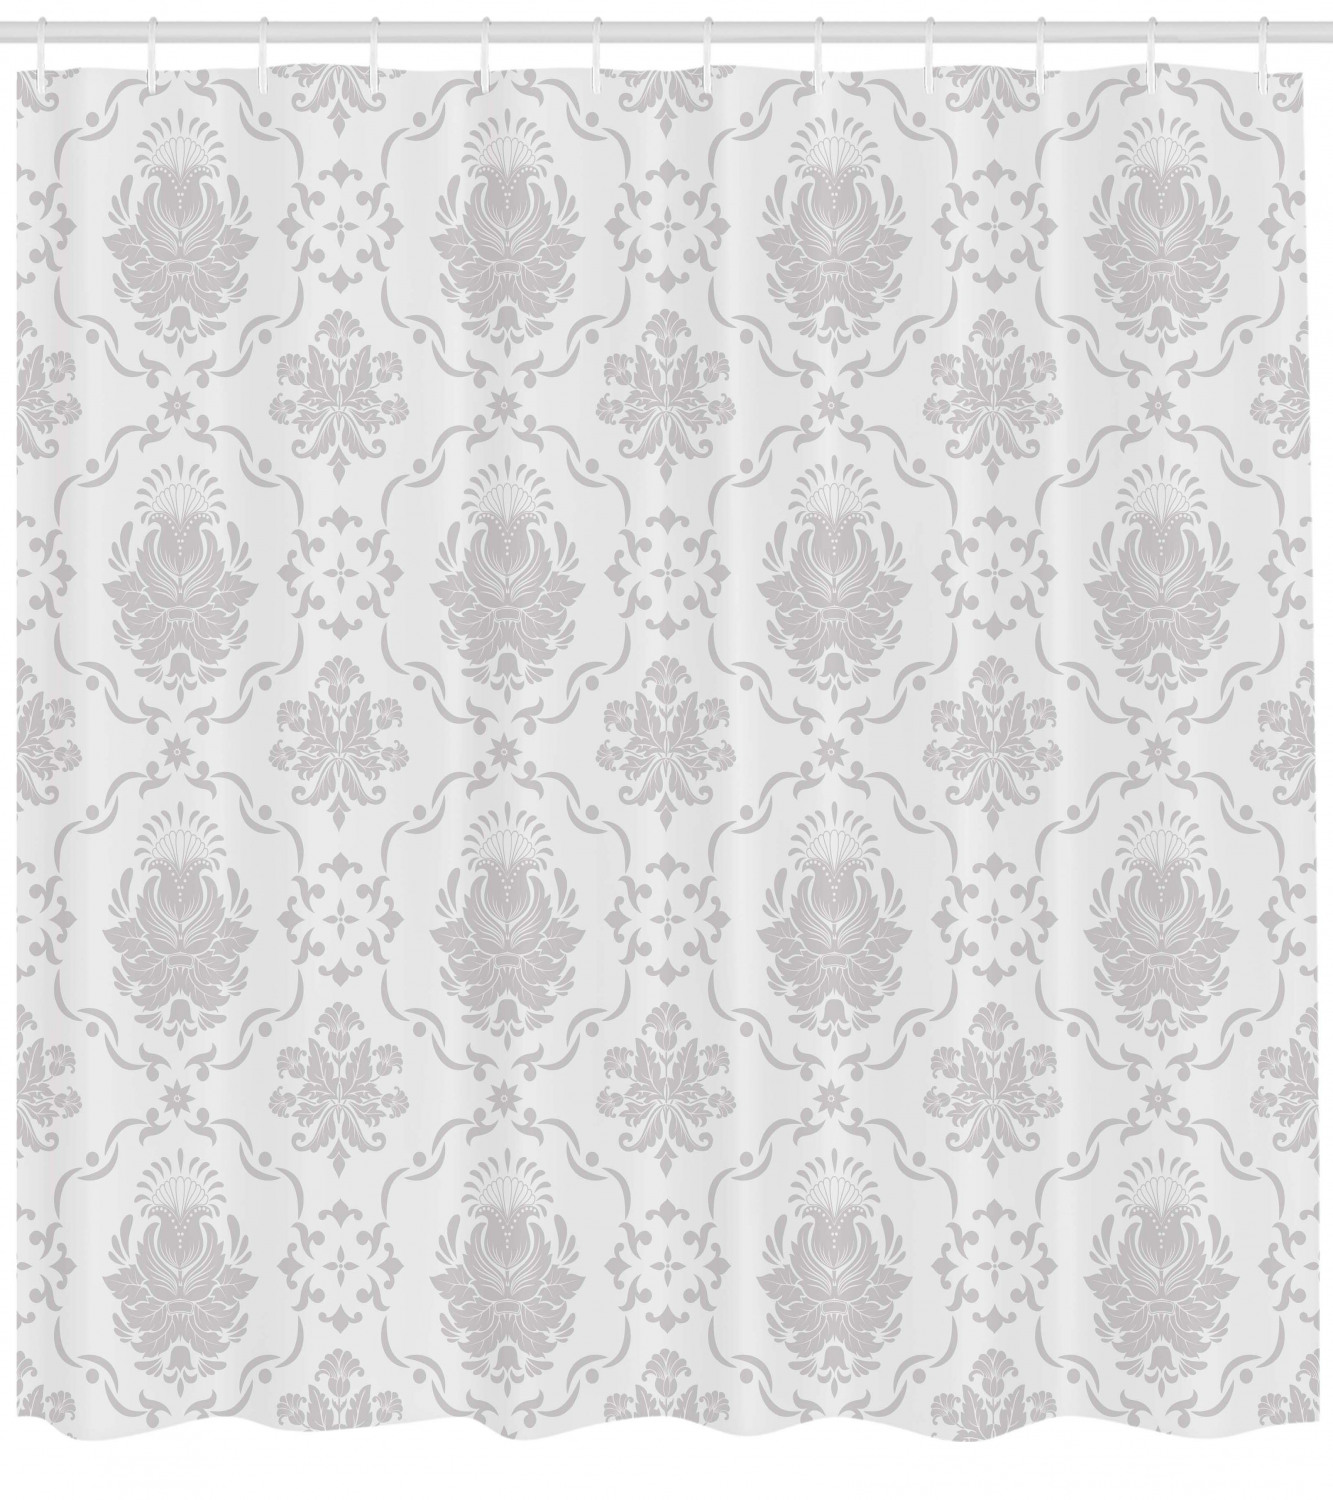 Grey Classic Victorian Floral Patterns Tulips Nostalgic Romantic Modern in Vintage Style Bohemian Cloth Fabric Bathroom Decor Set with Hooks Ambesonne Grey Shower Curtain 70 Long